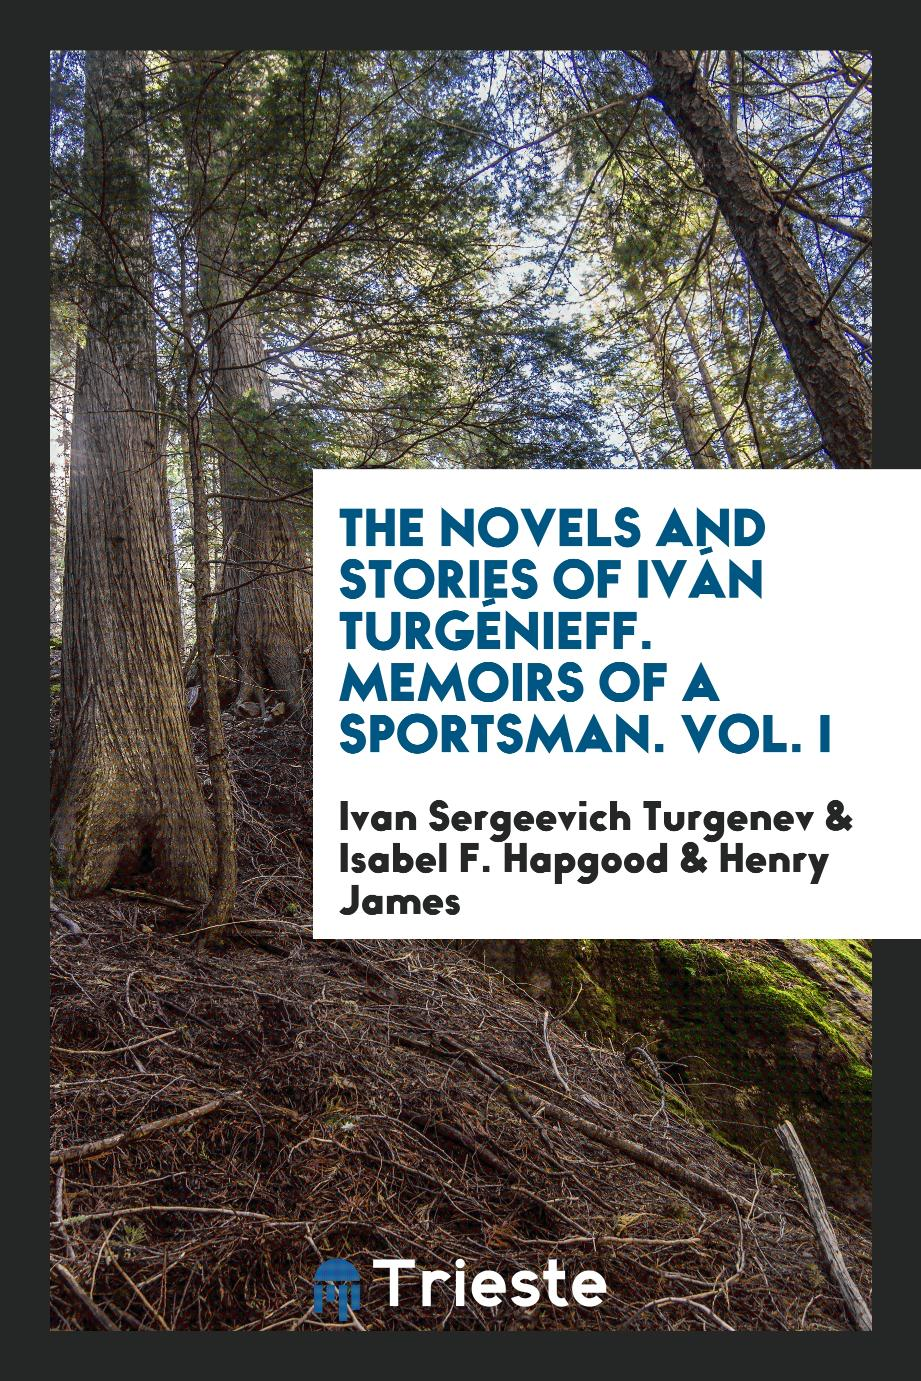 The Novels and Stories of Iván Turgénieff. Memoirs of a Sportsman. Vol. I